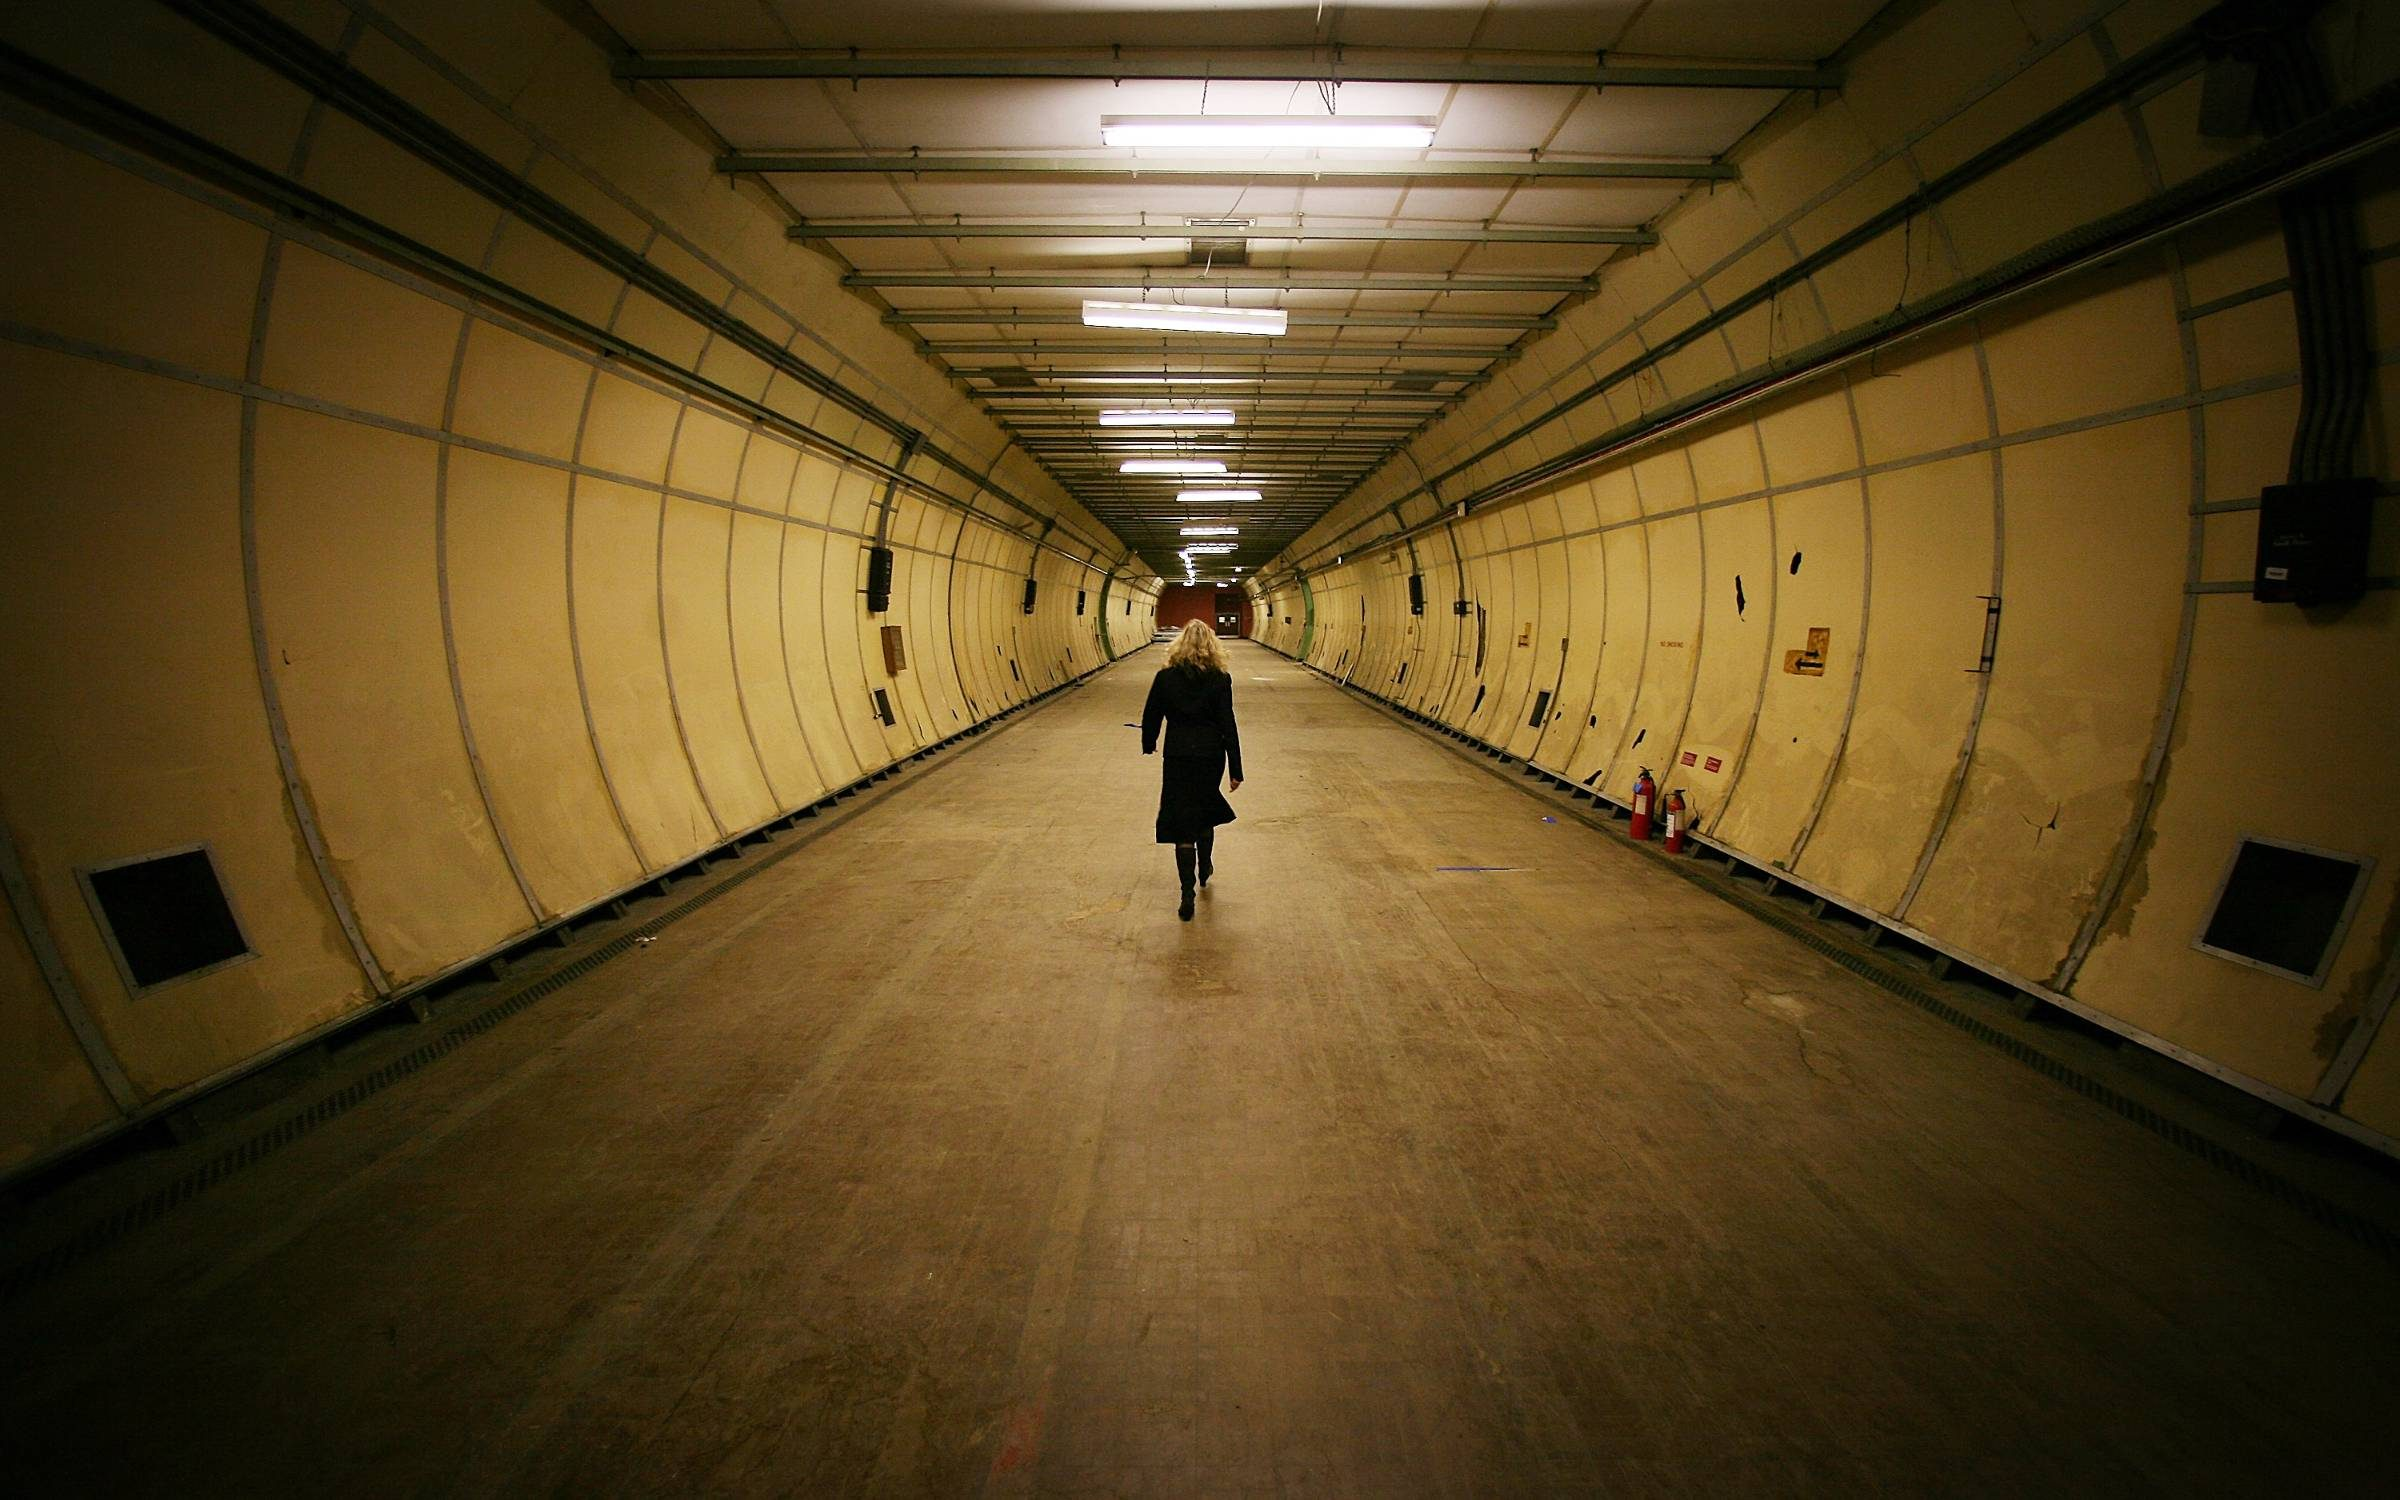 A visitor walks in a formely secret air raid tunnel called Third Avenue in London. The once secret tunnels were built 100 feet under central London in 1940 as fully equipped air raid shelters and could accommodate 8000 people. They have since been used by MI6 and the Public Records Office to hold 400 tonnes of secret documents. Credit: Peter Macdiarmid